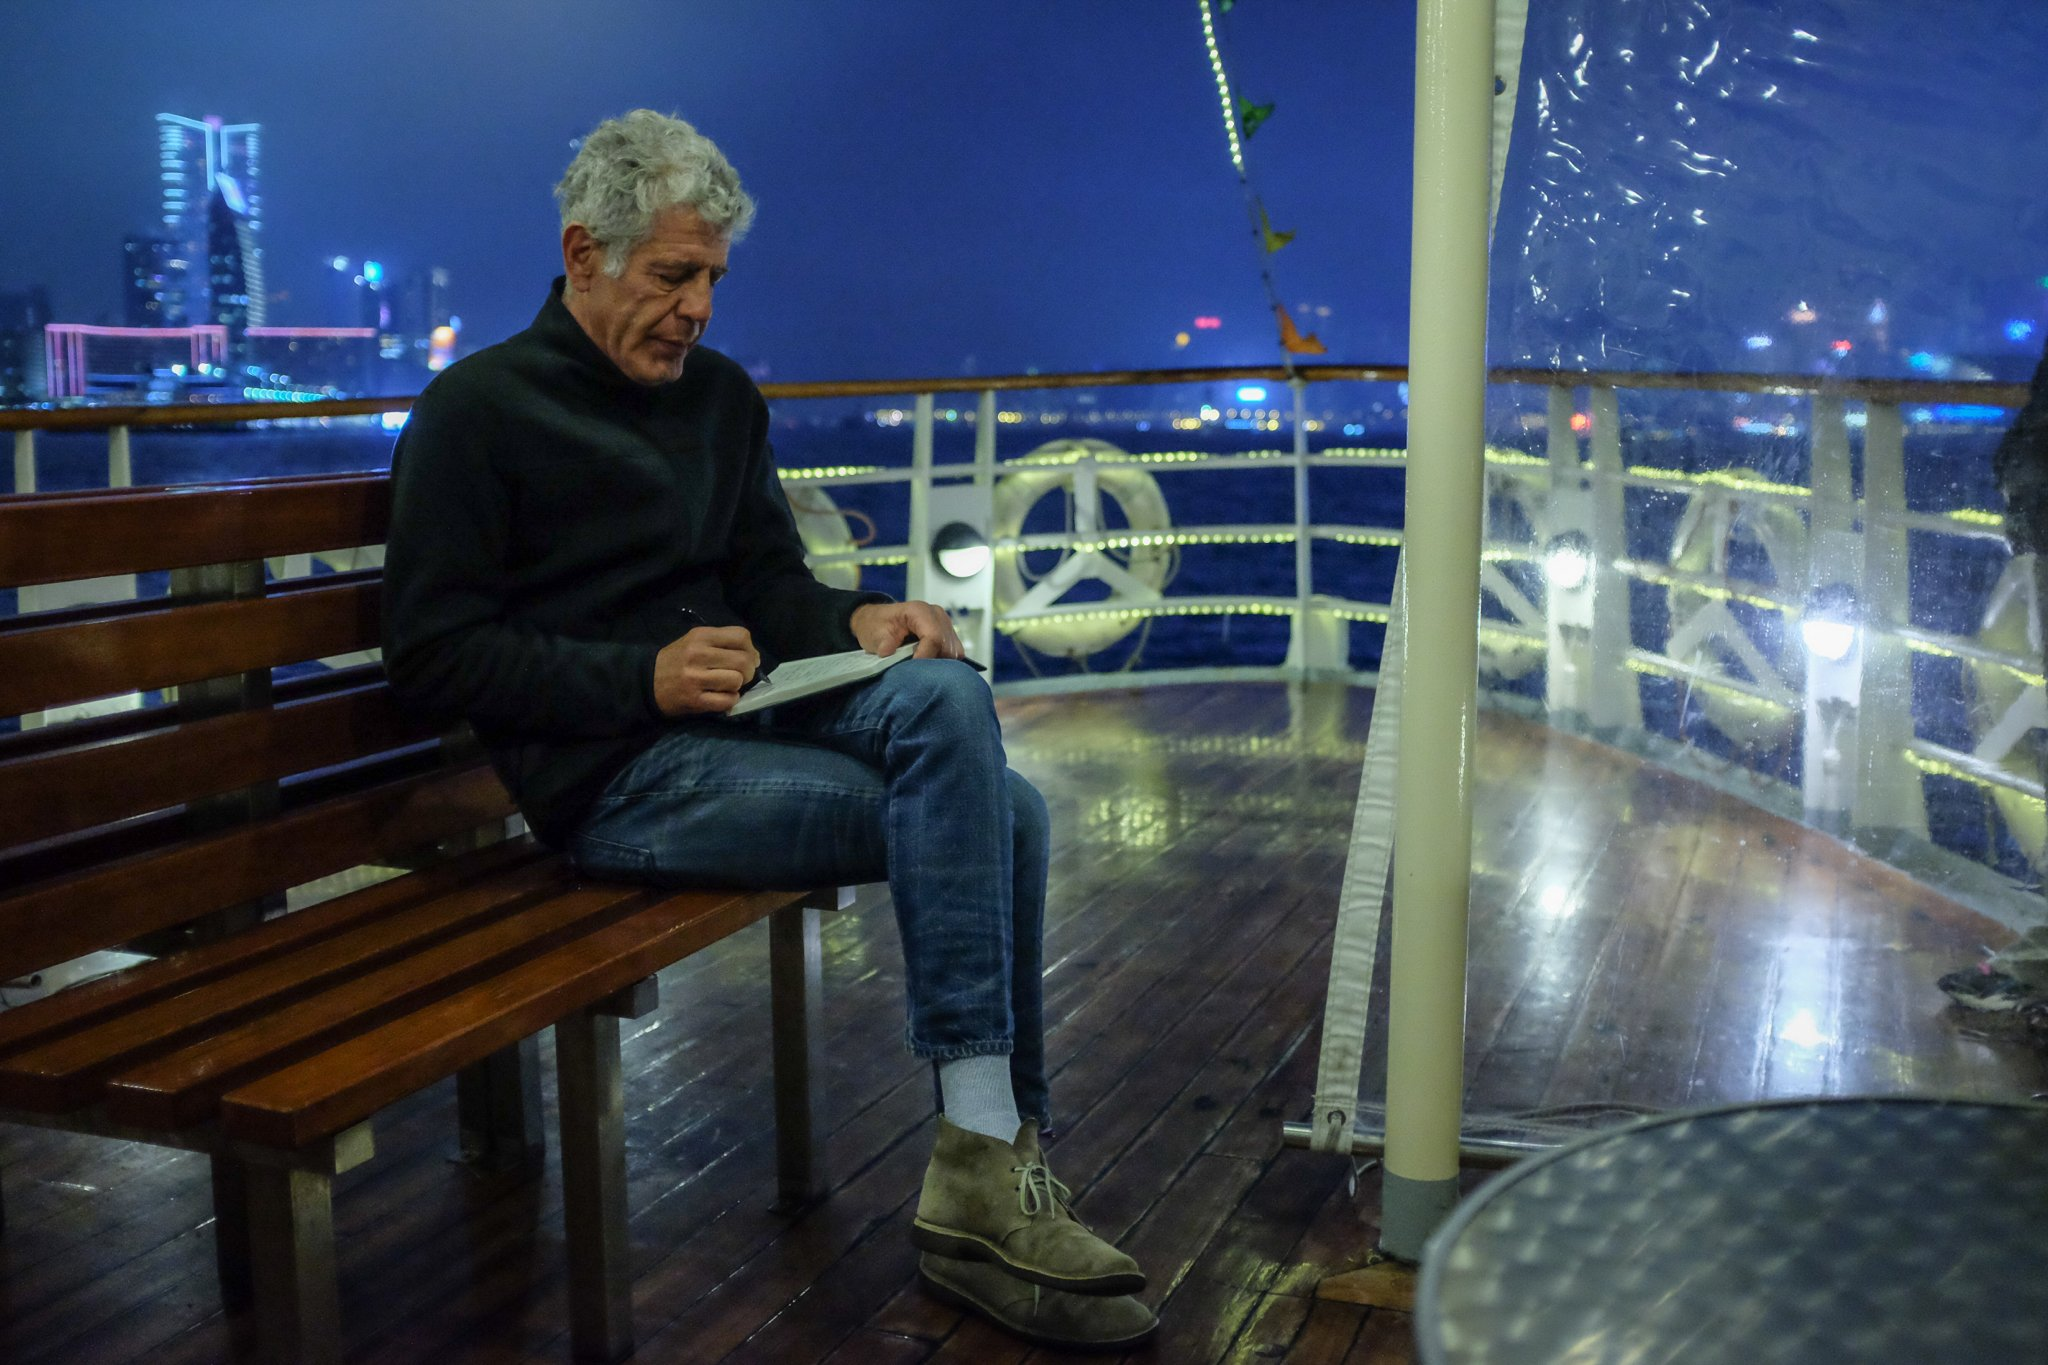 Star Ferry to Kowloon. Hong Kong @PartsUnknownCNN Sunday Night  @AsiaArgento @dukefeng52 https://t.co/eVwm33uTQ6